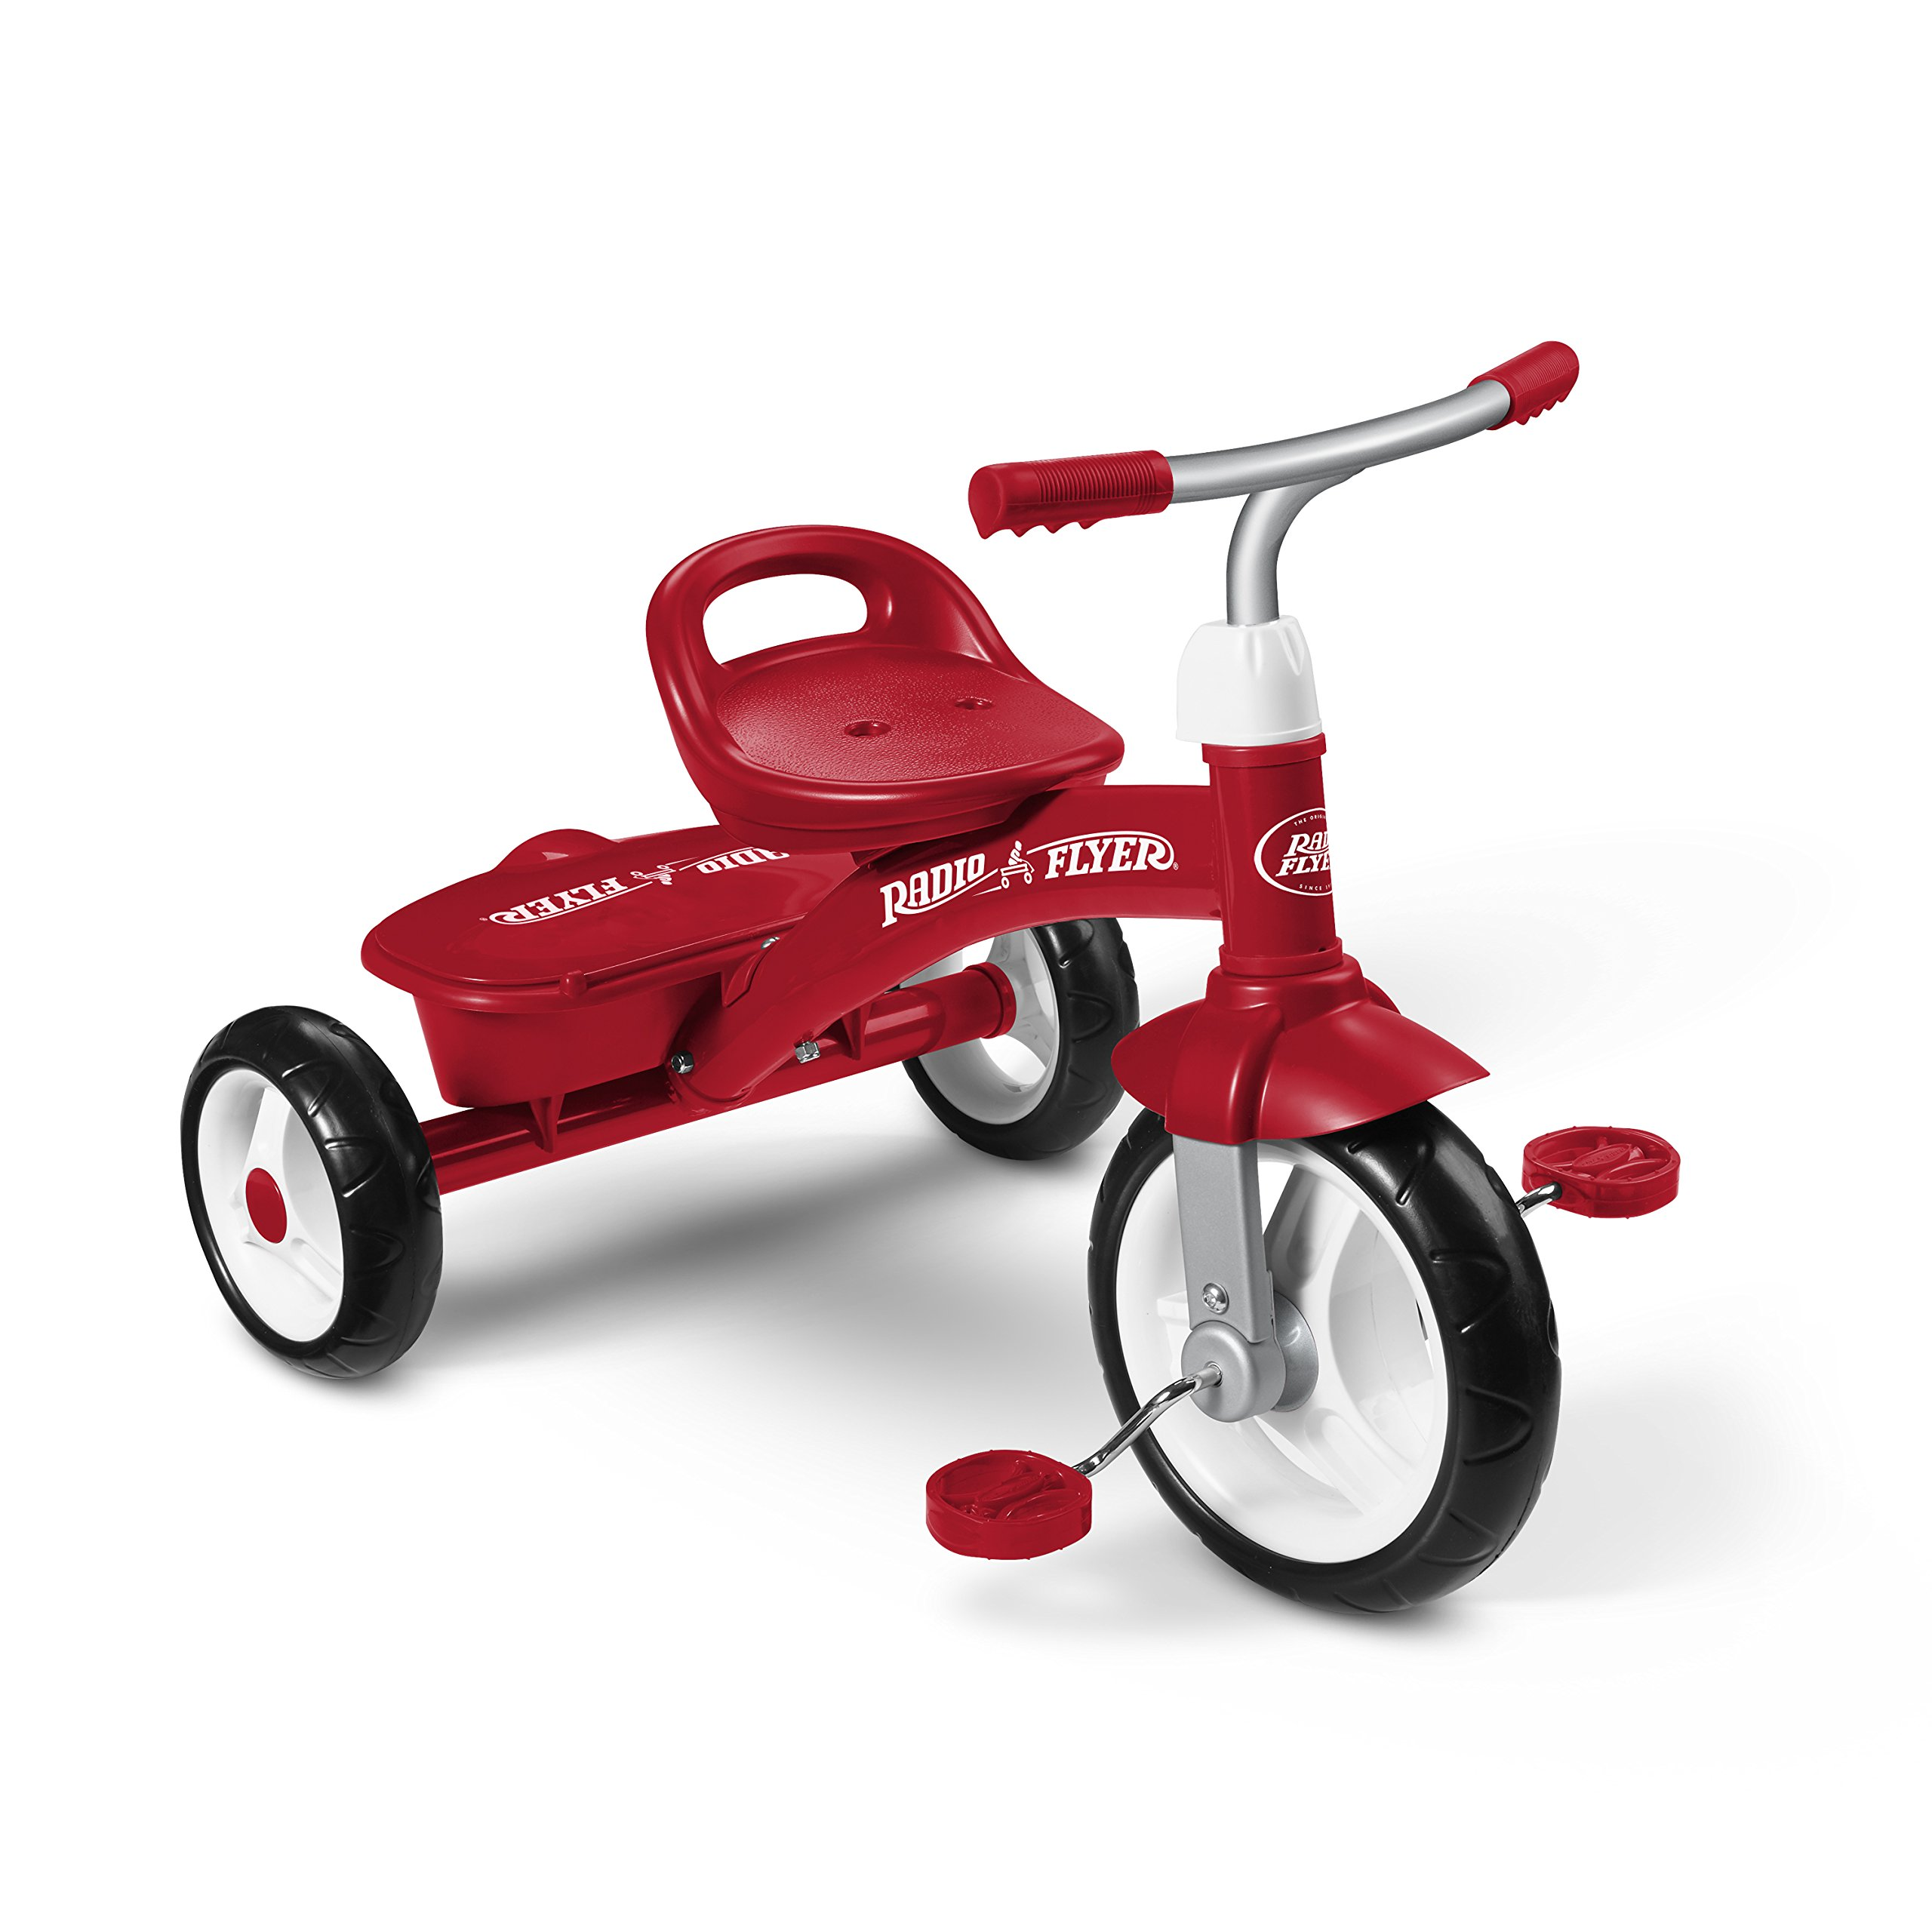 Buy Red Rider Trike Now!